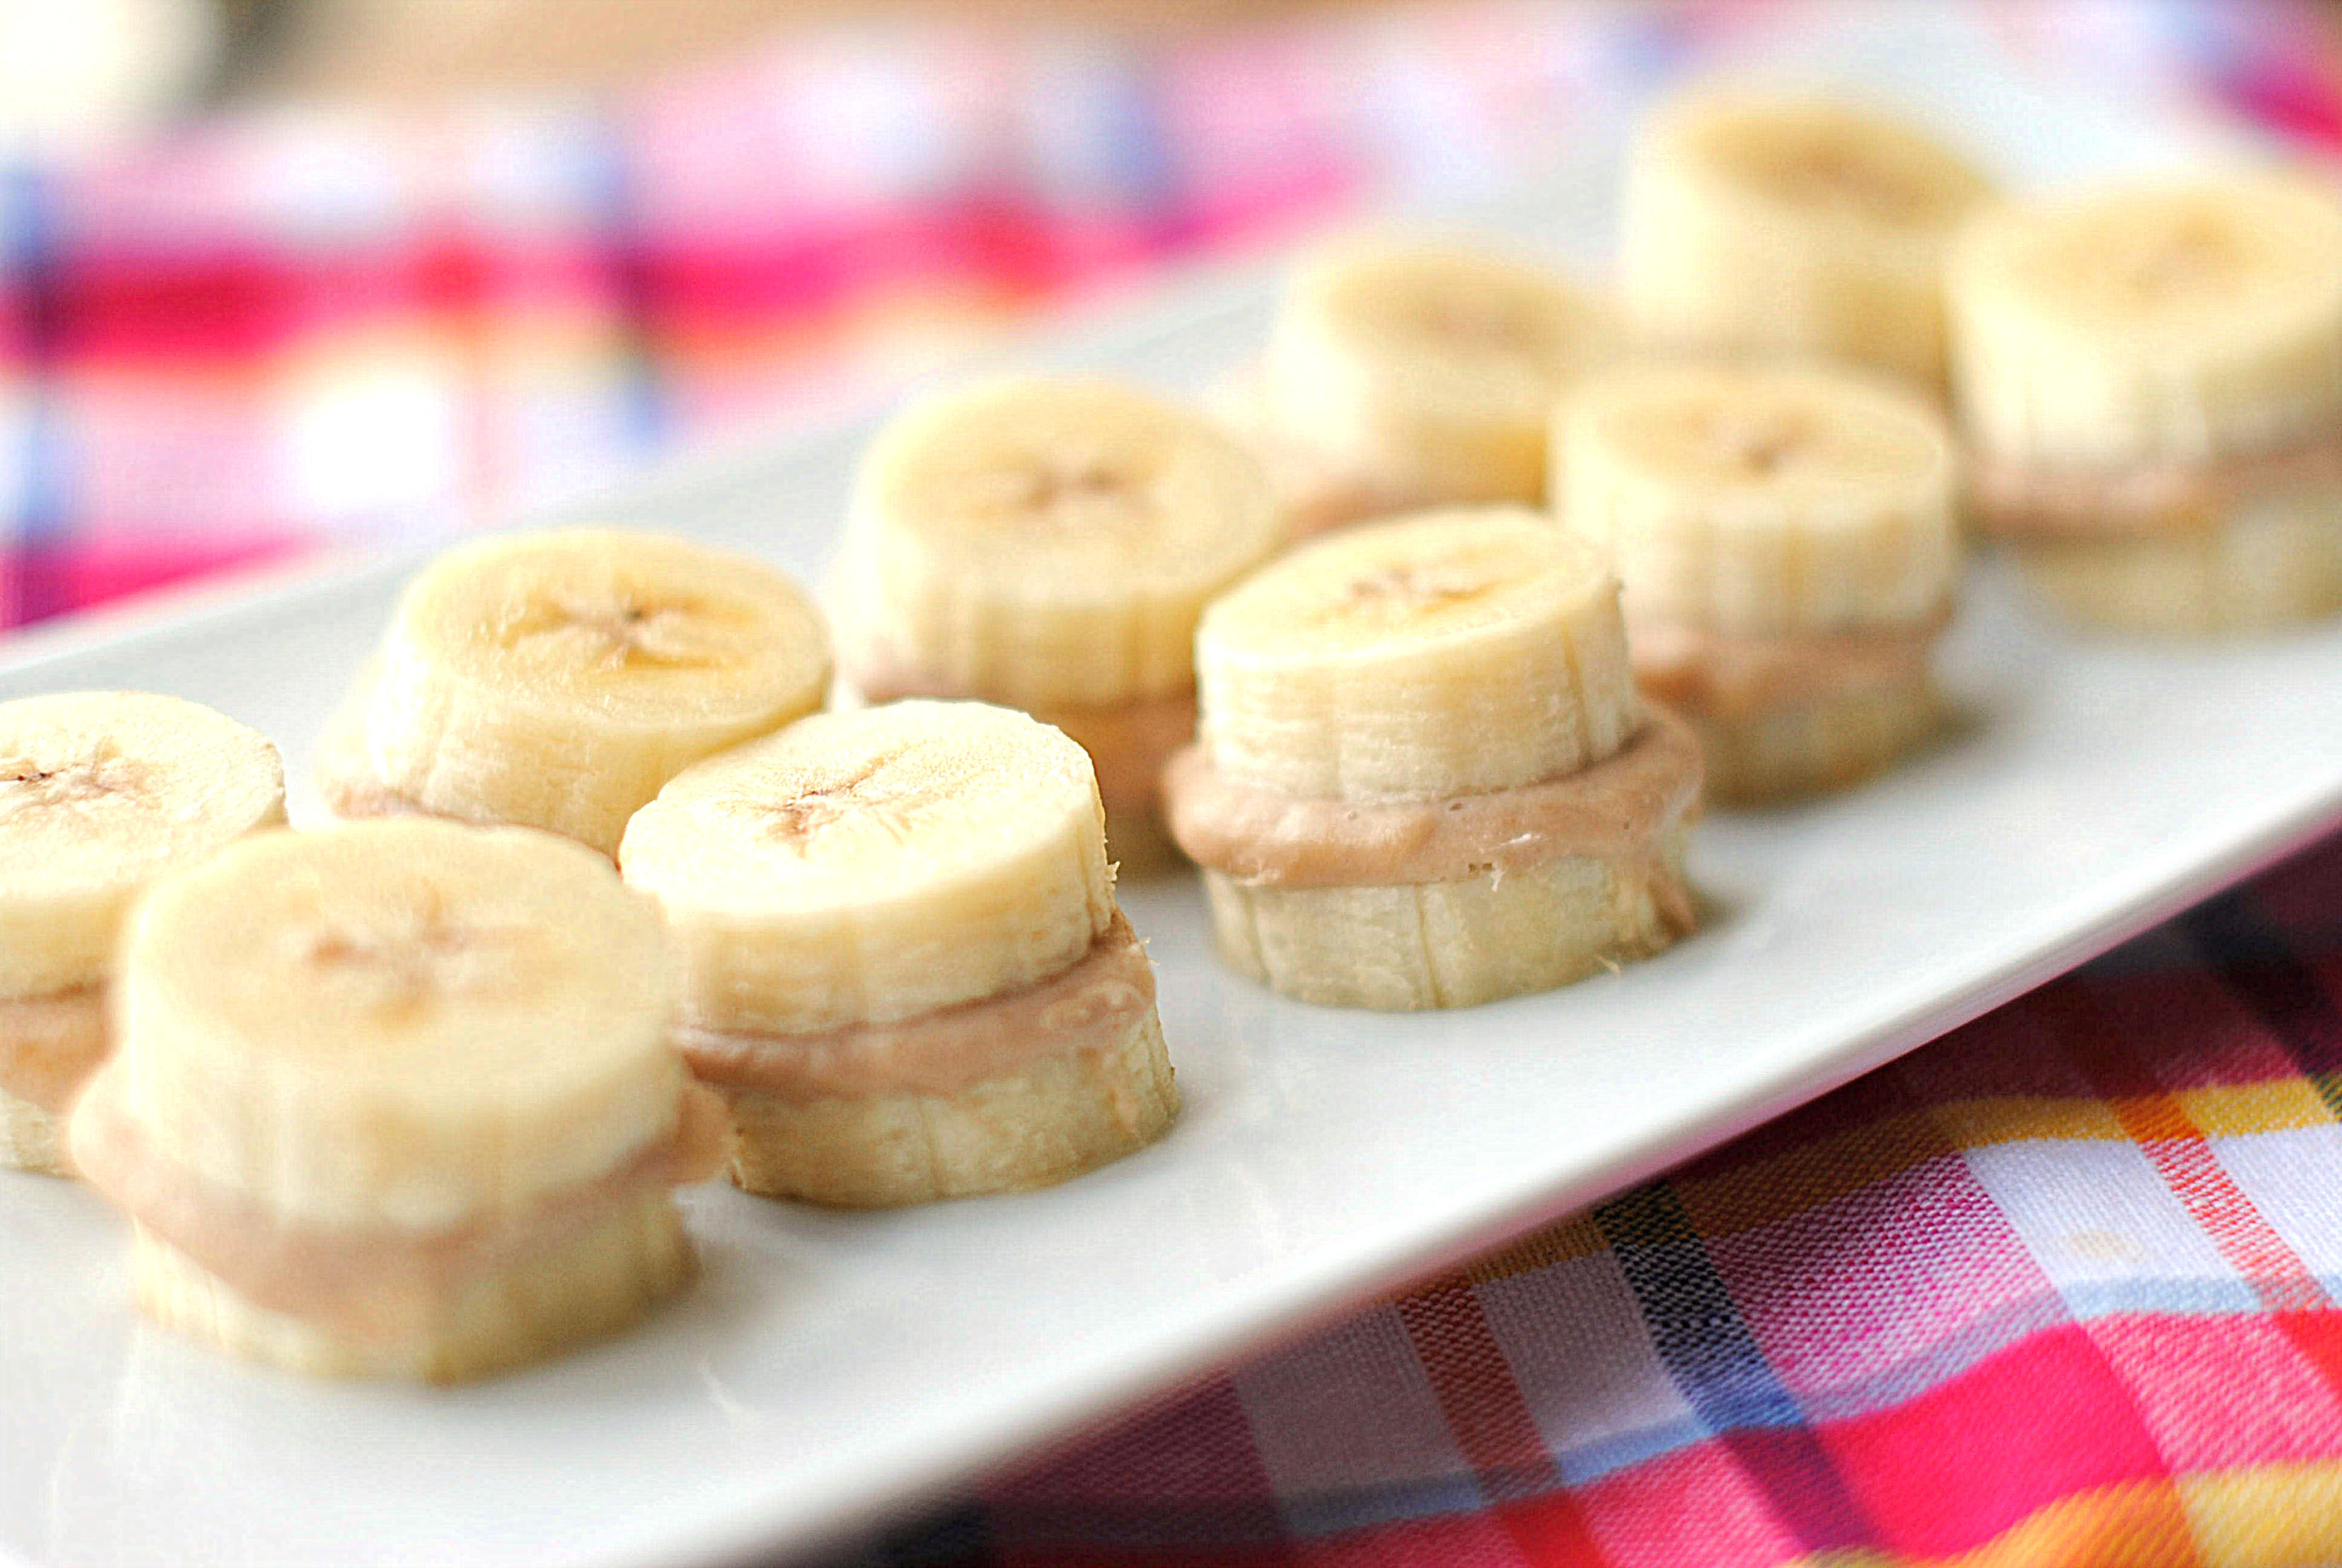 Post-Workout Banana Bites - Eat Yourself Skinny